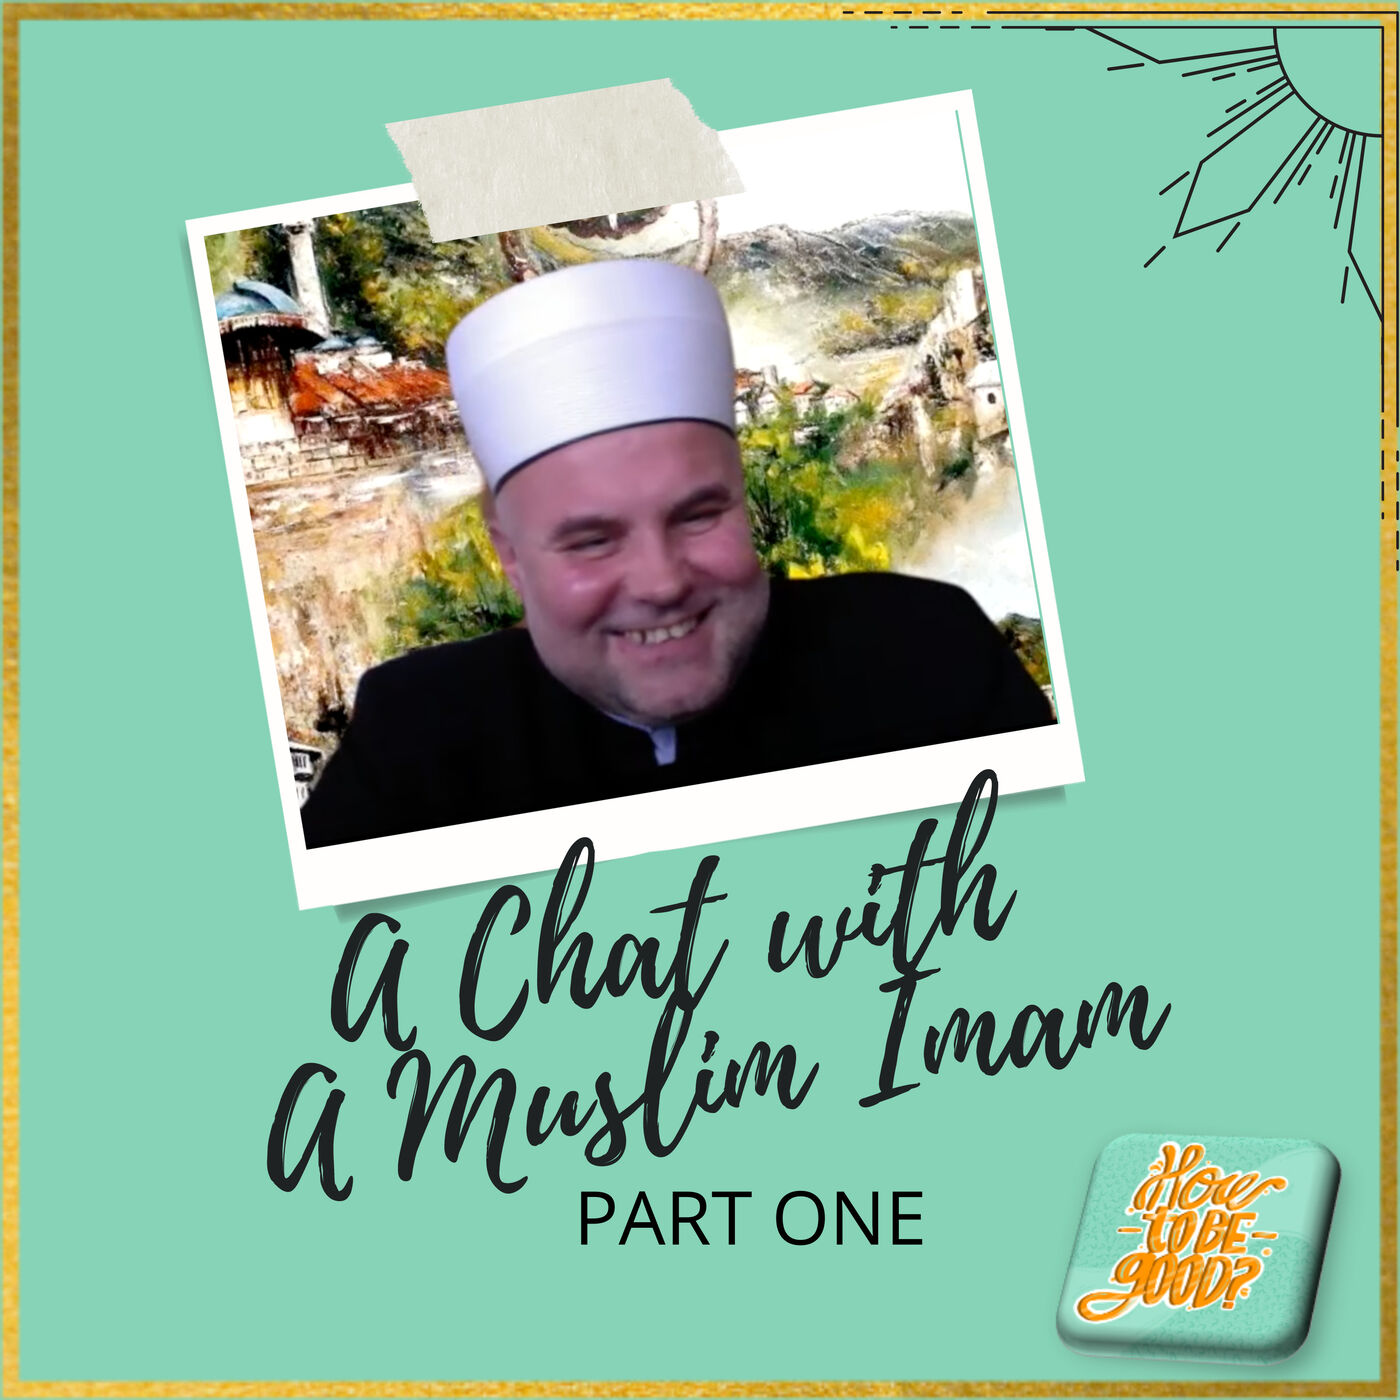 A Chat with a Muslim Imam - Part 1